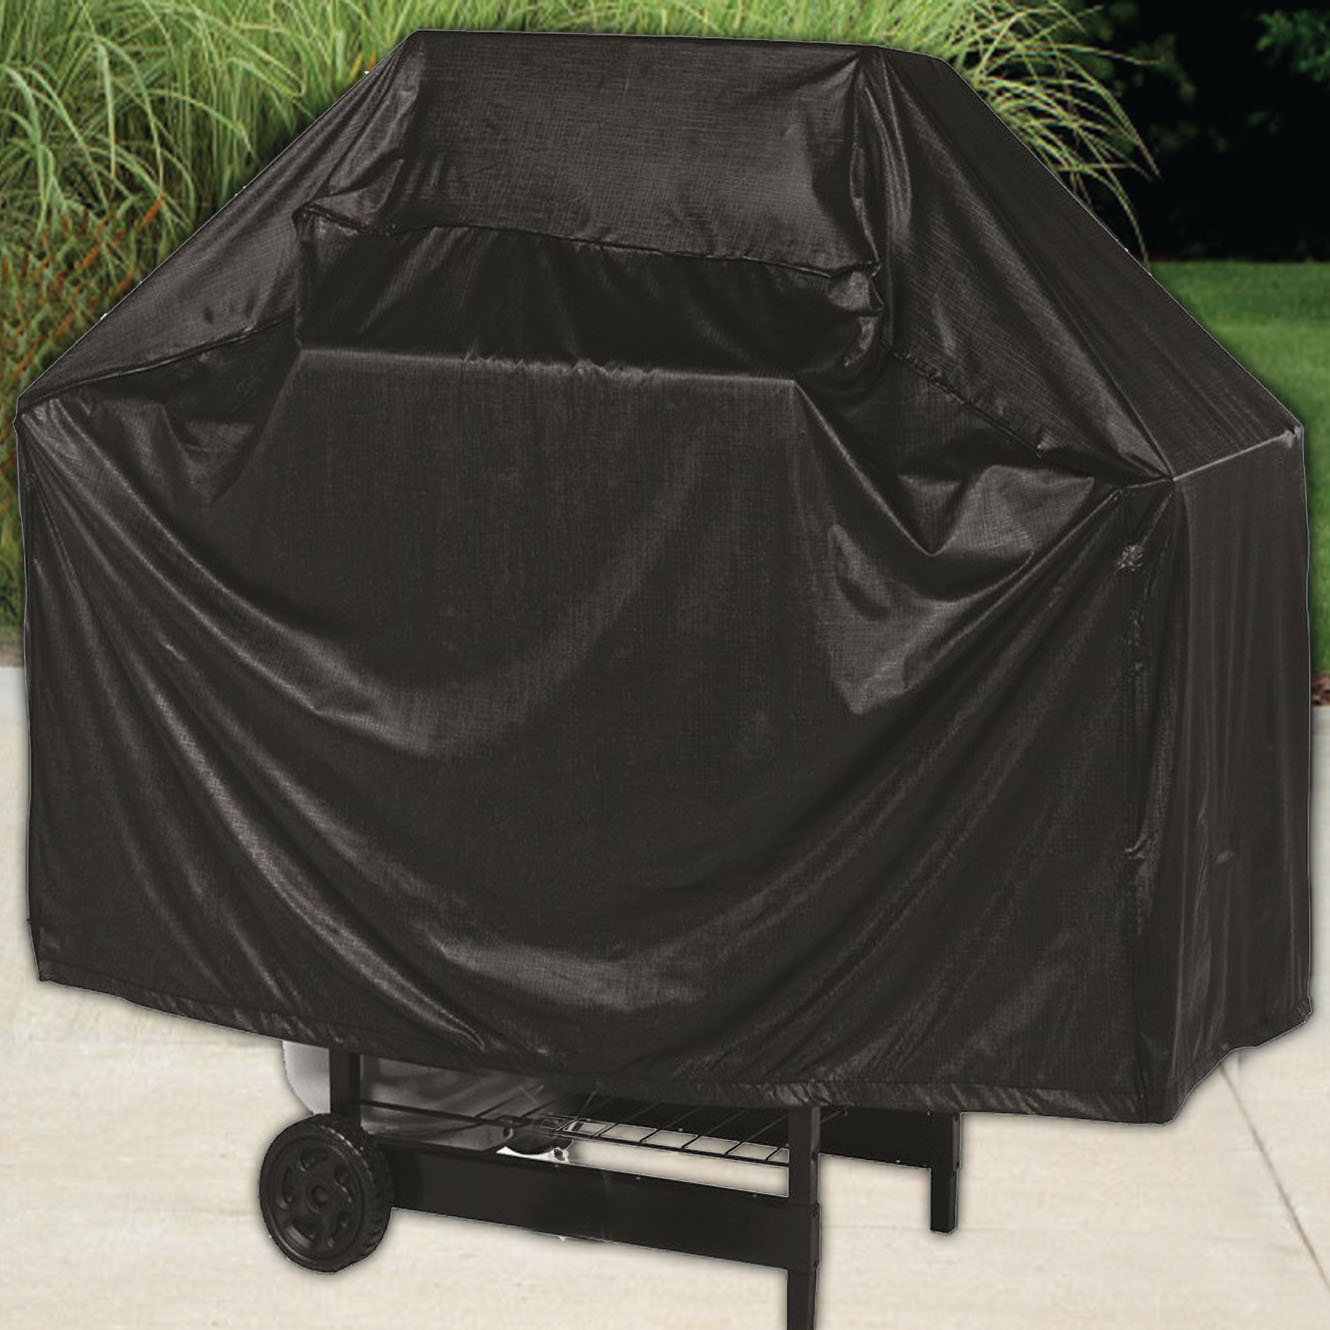 Outdoor Patio Grill Cover